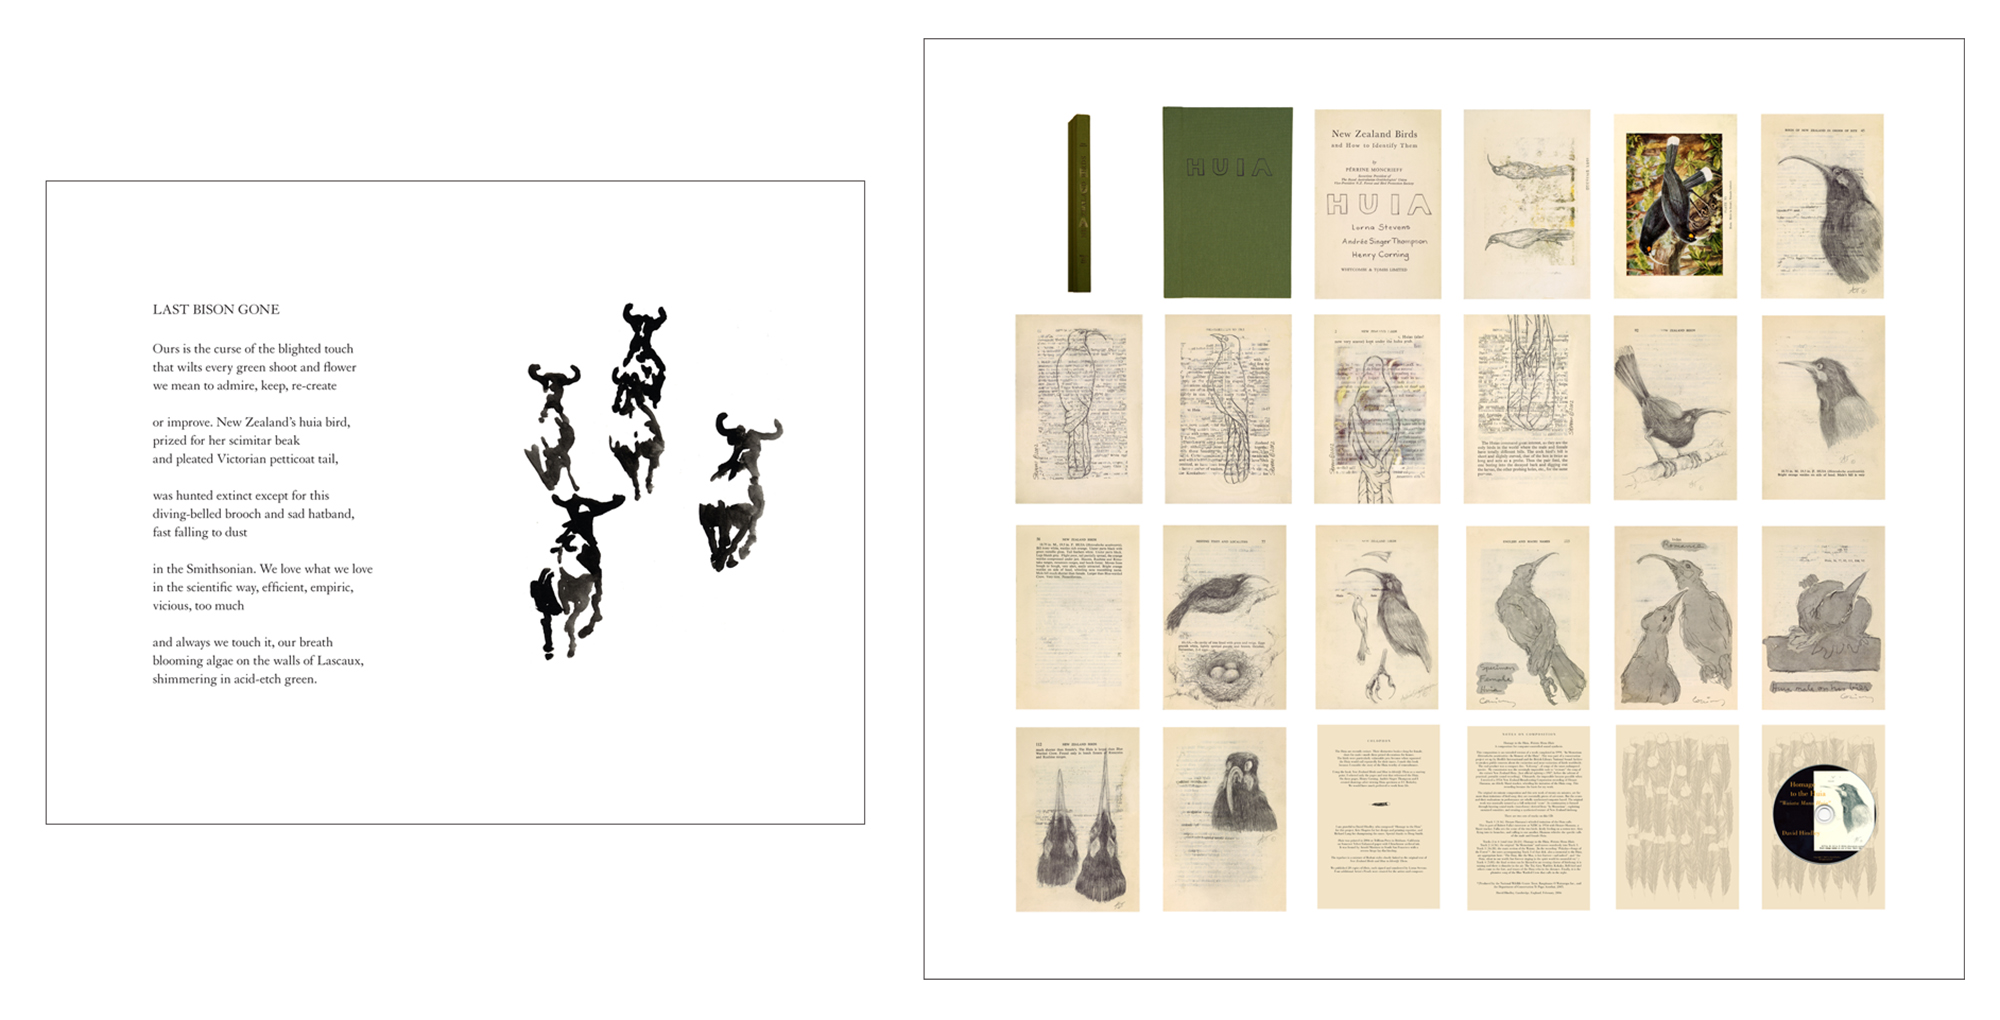 """Last Bison Gone"" and ""Herd"" (2010, framed archival print, 13.5 x 16.5 x 1.5 inches) from  God, Seed: Poetry and Art About the Natural World , a book collaboration with poet Rebecca Foust published by Tebot Bach.   Huia  (2006, altered book, 9.25 x 6.25 x .75 inches) alters a 1925 edition of ""New Zealand Birds and How to Identify Them"" to include drawings of this extinct New Zealand bird by Henry Corning, Andrée Singer Thompson and Lorna Stevens."